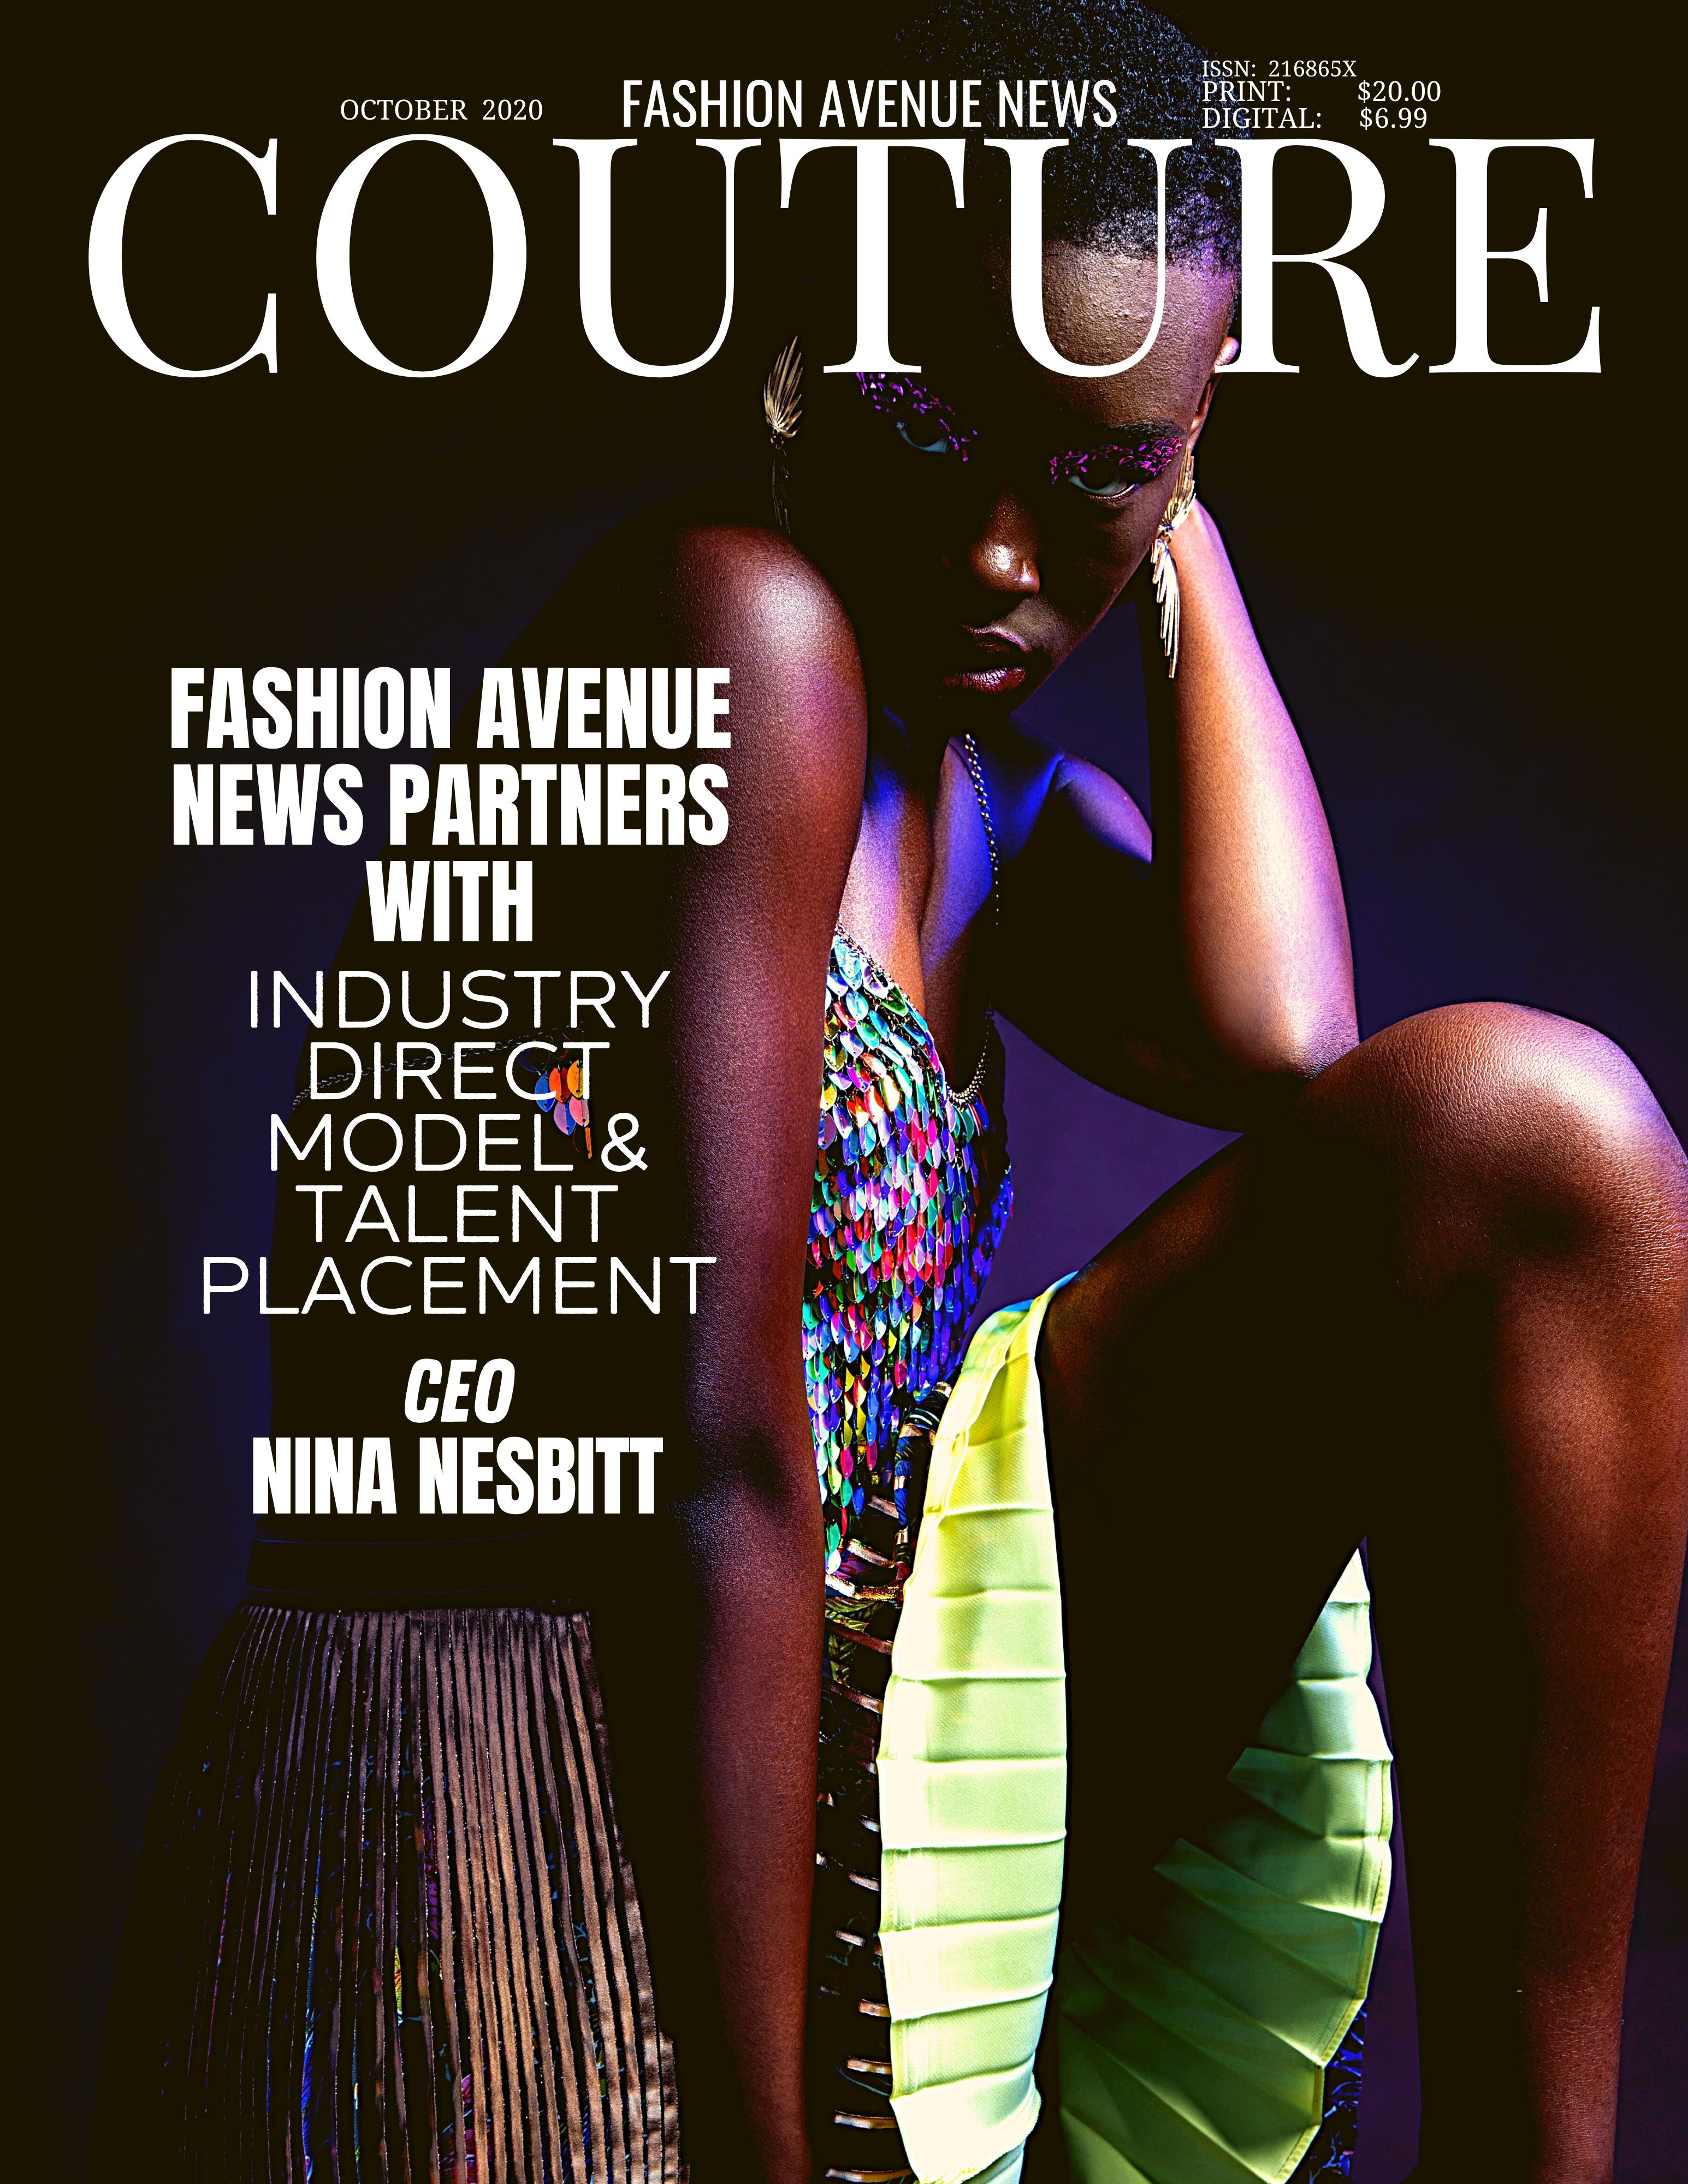 FAN COUTURE BK OCT 2020